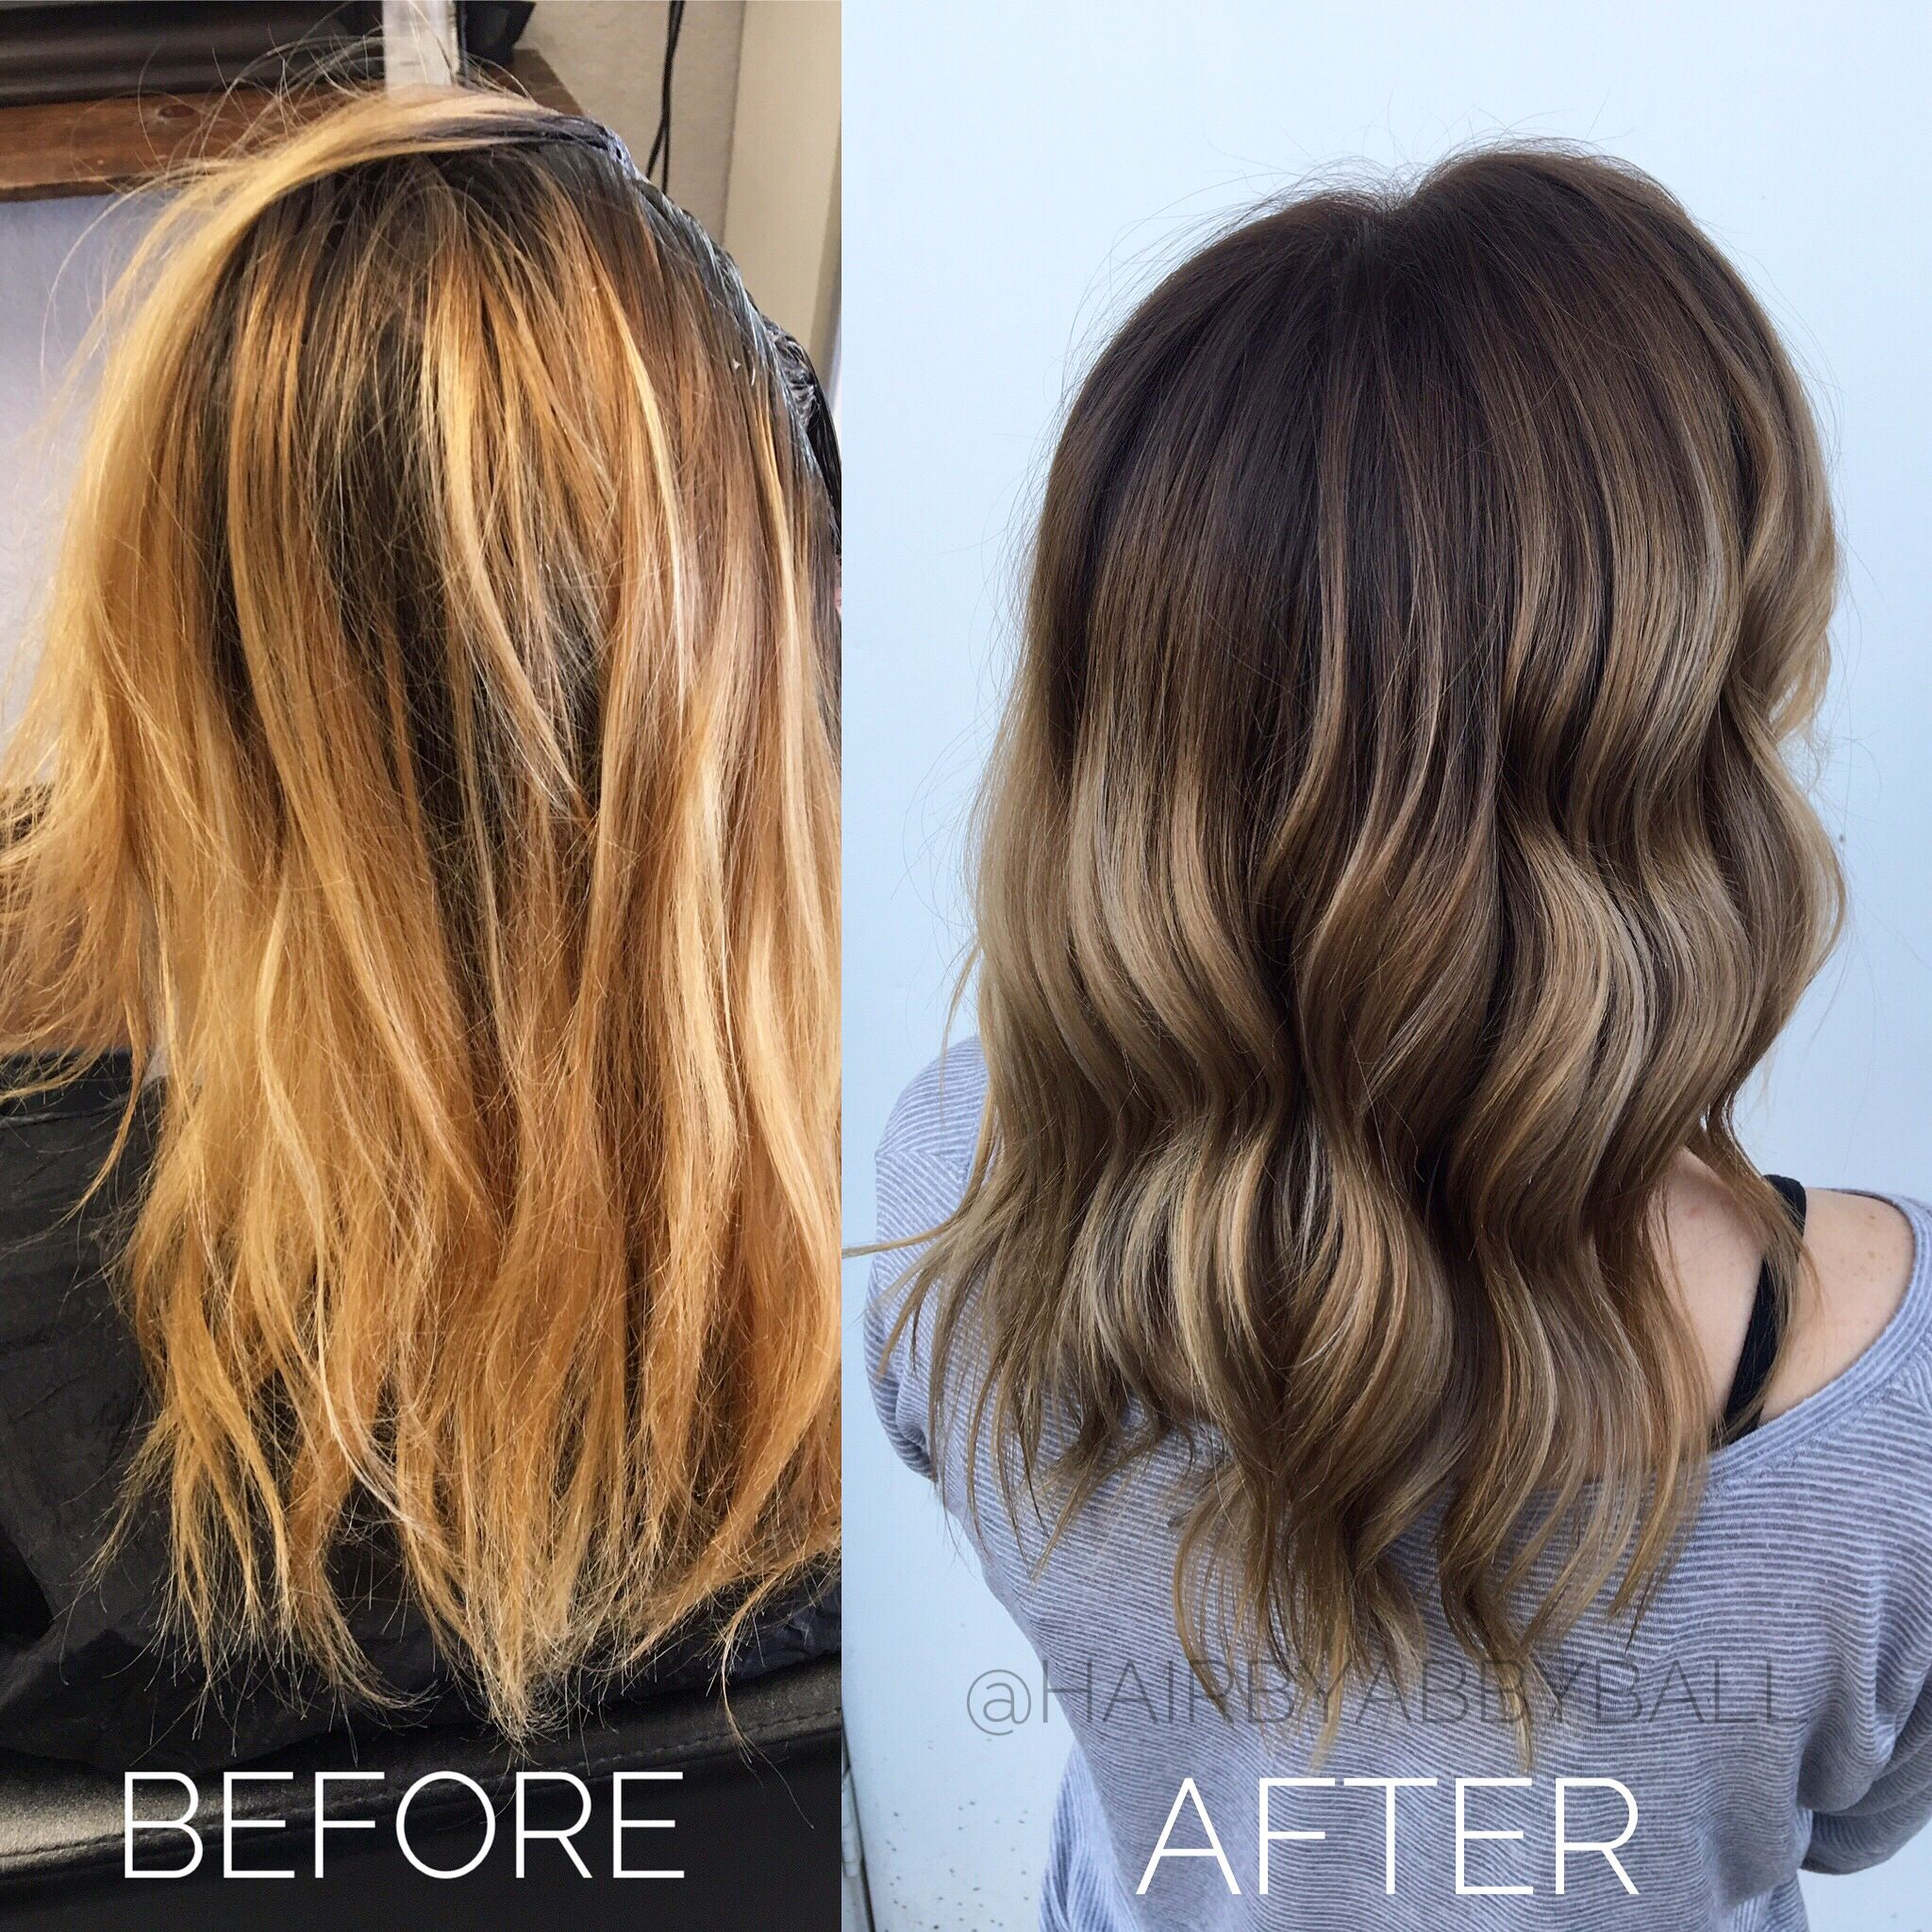 Before And After Blonde To Brown Balayage Hair Brown Hair